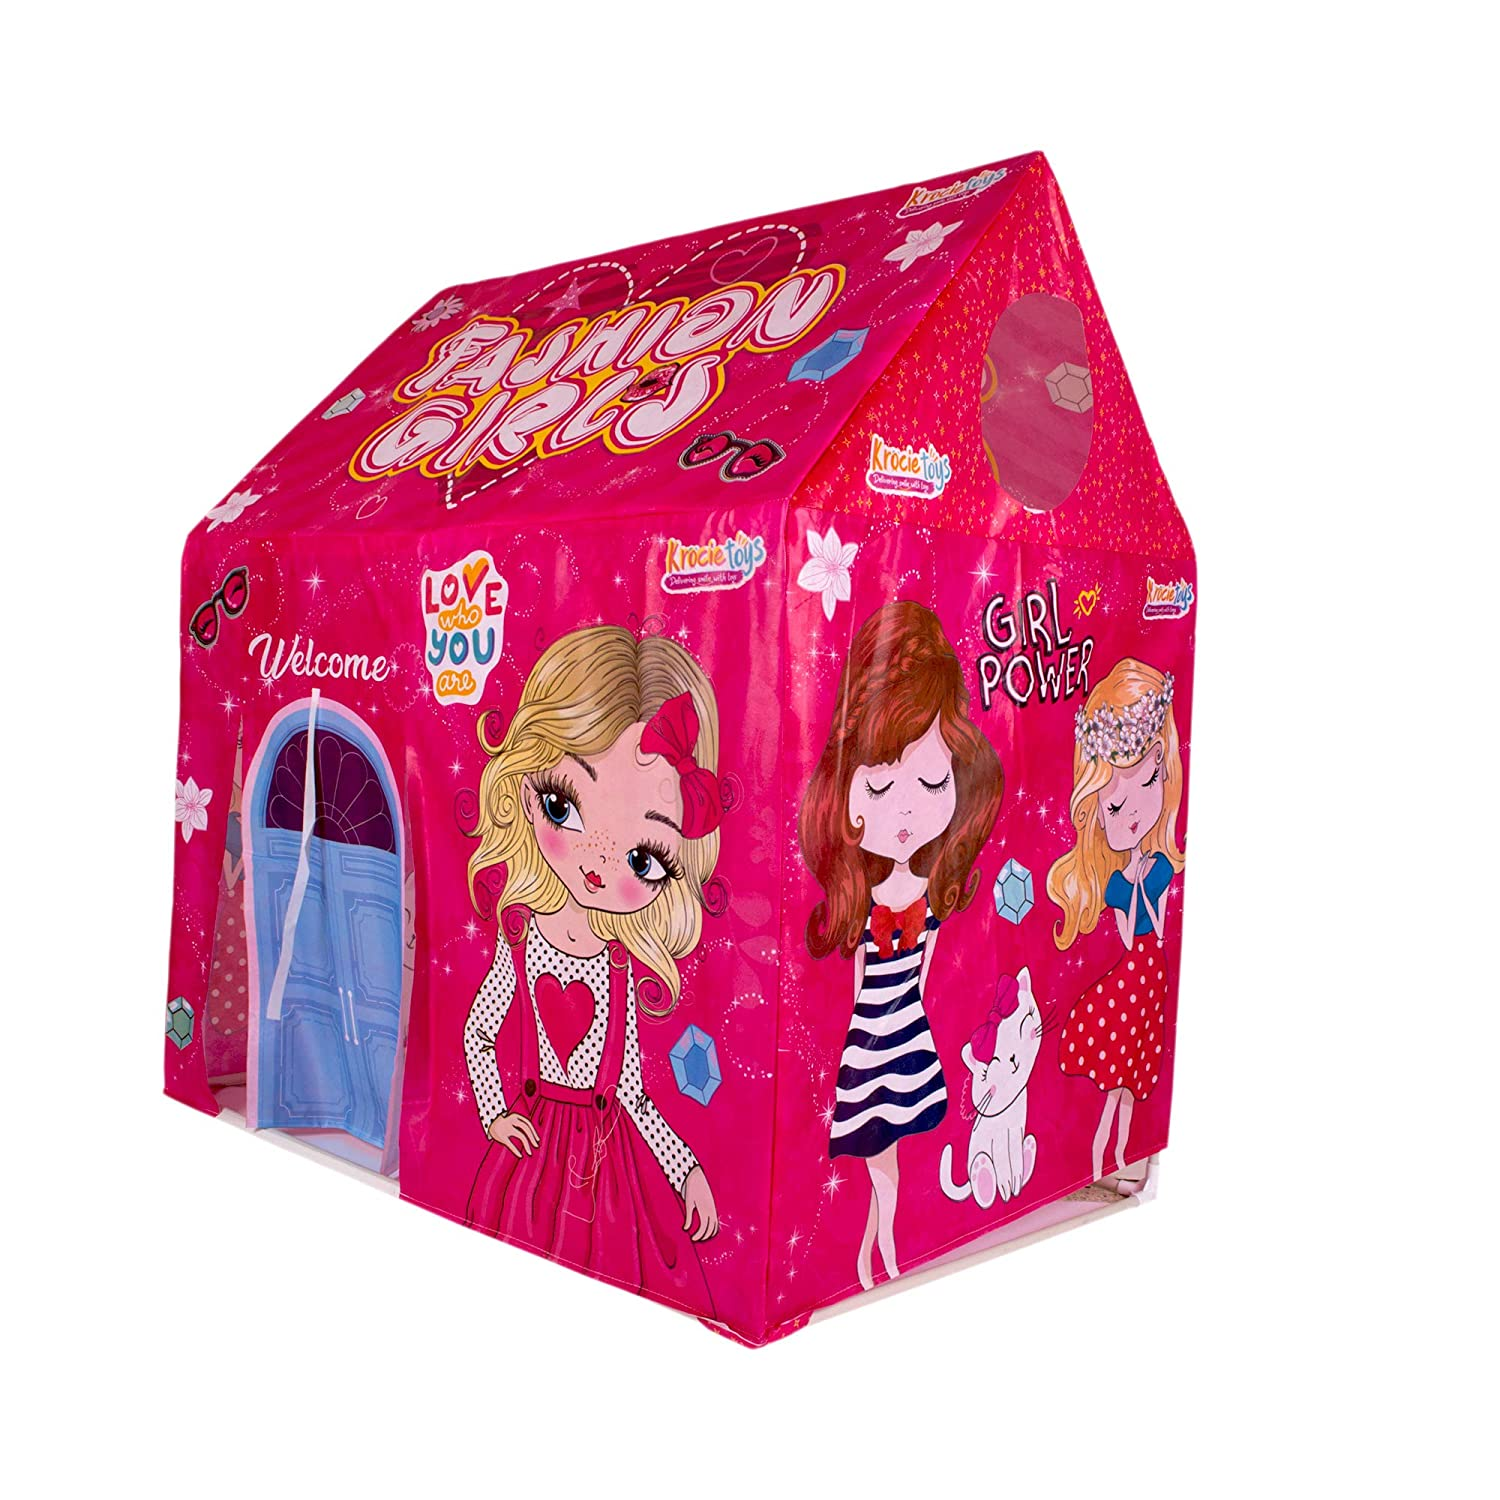 Toys Treasure Hut Type Kids Toys Jumbo Size Play Tent House for Boys and Girls